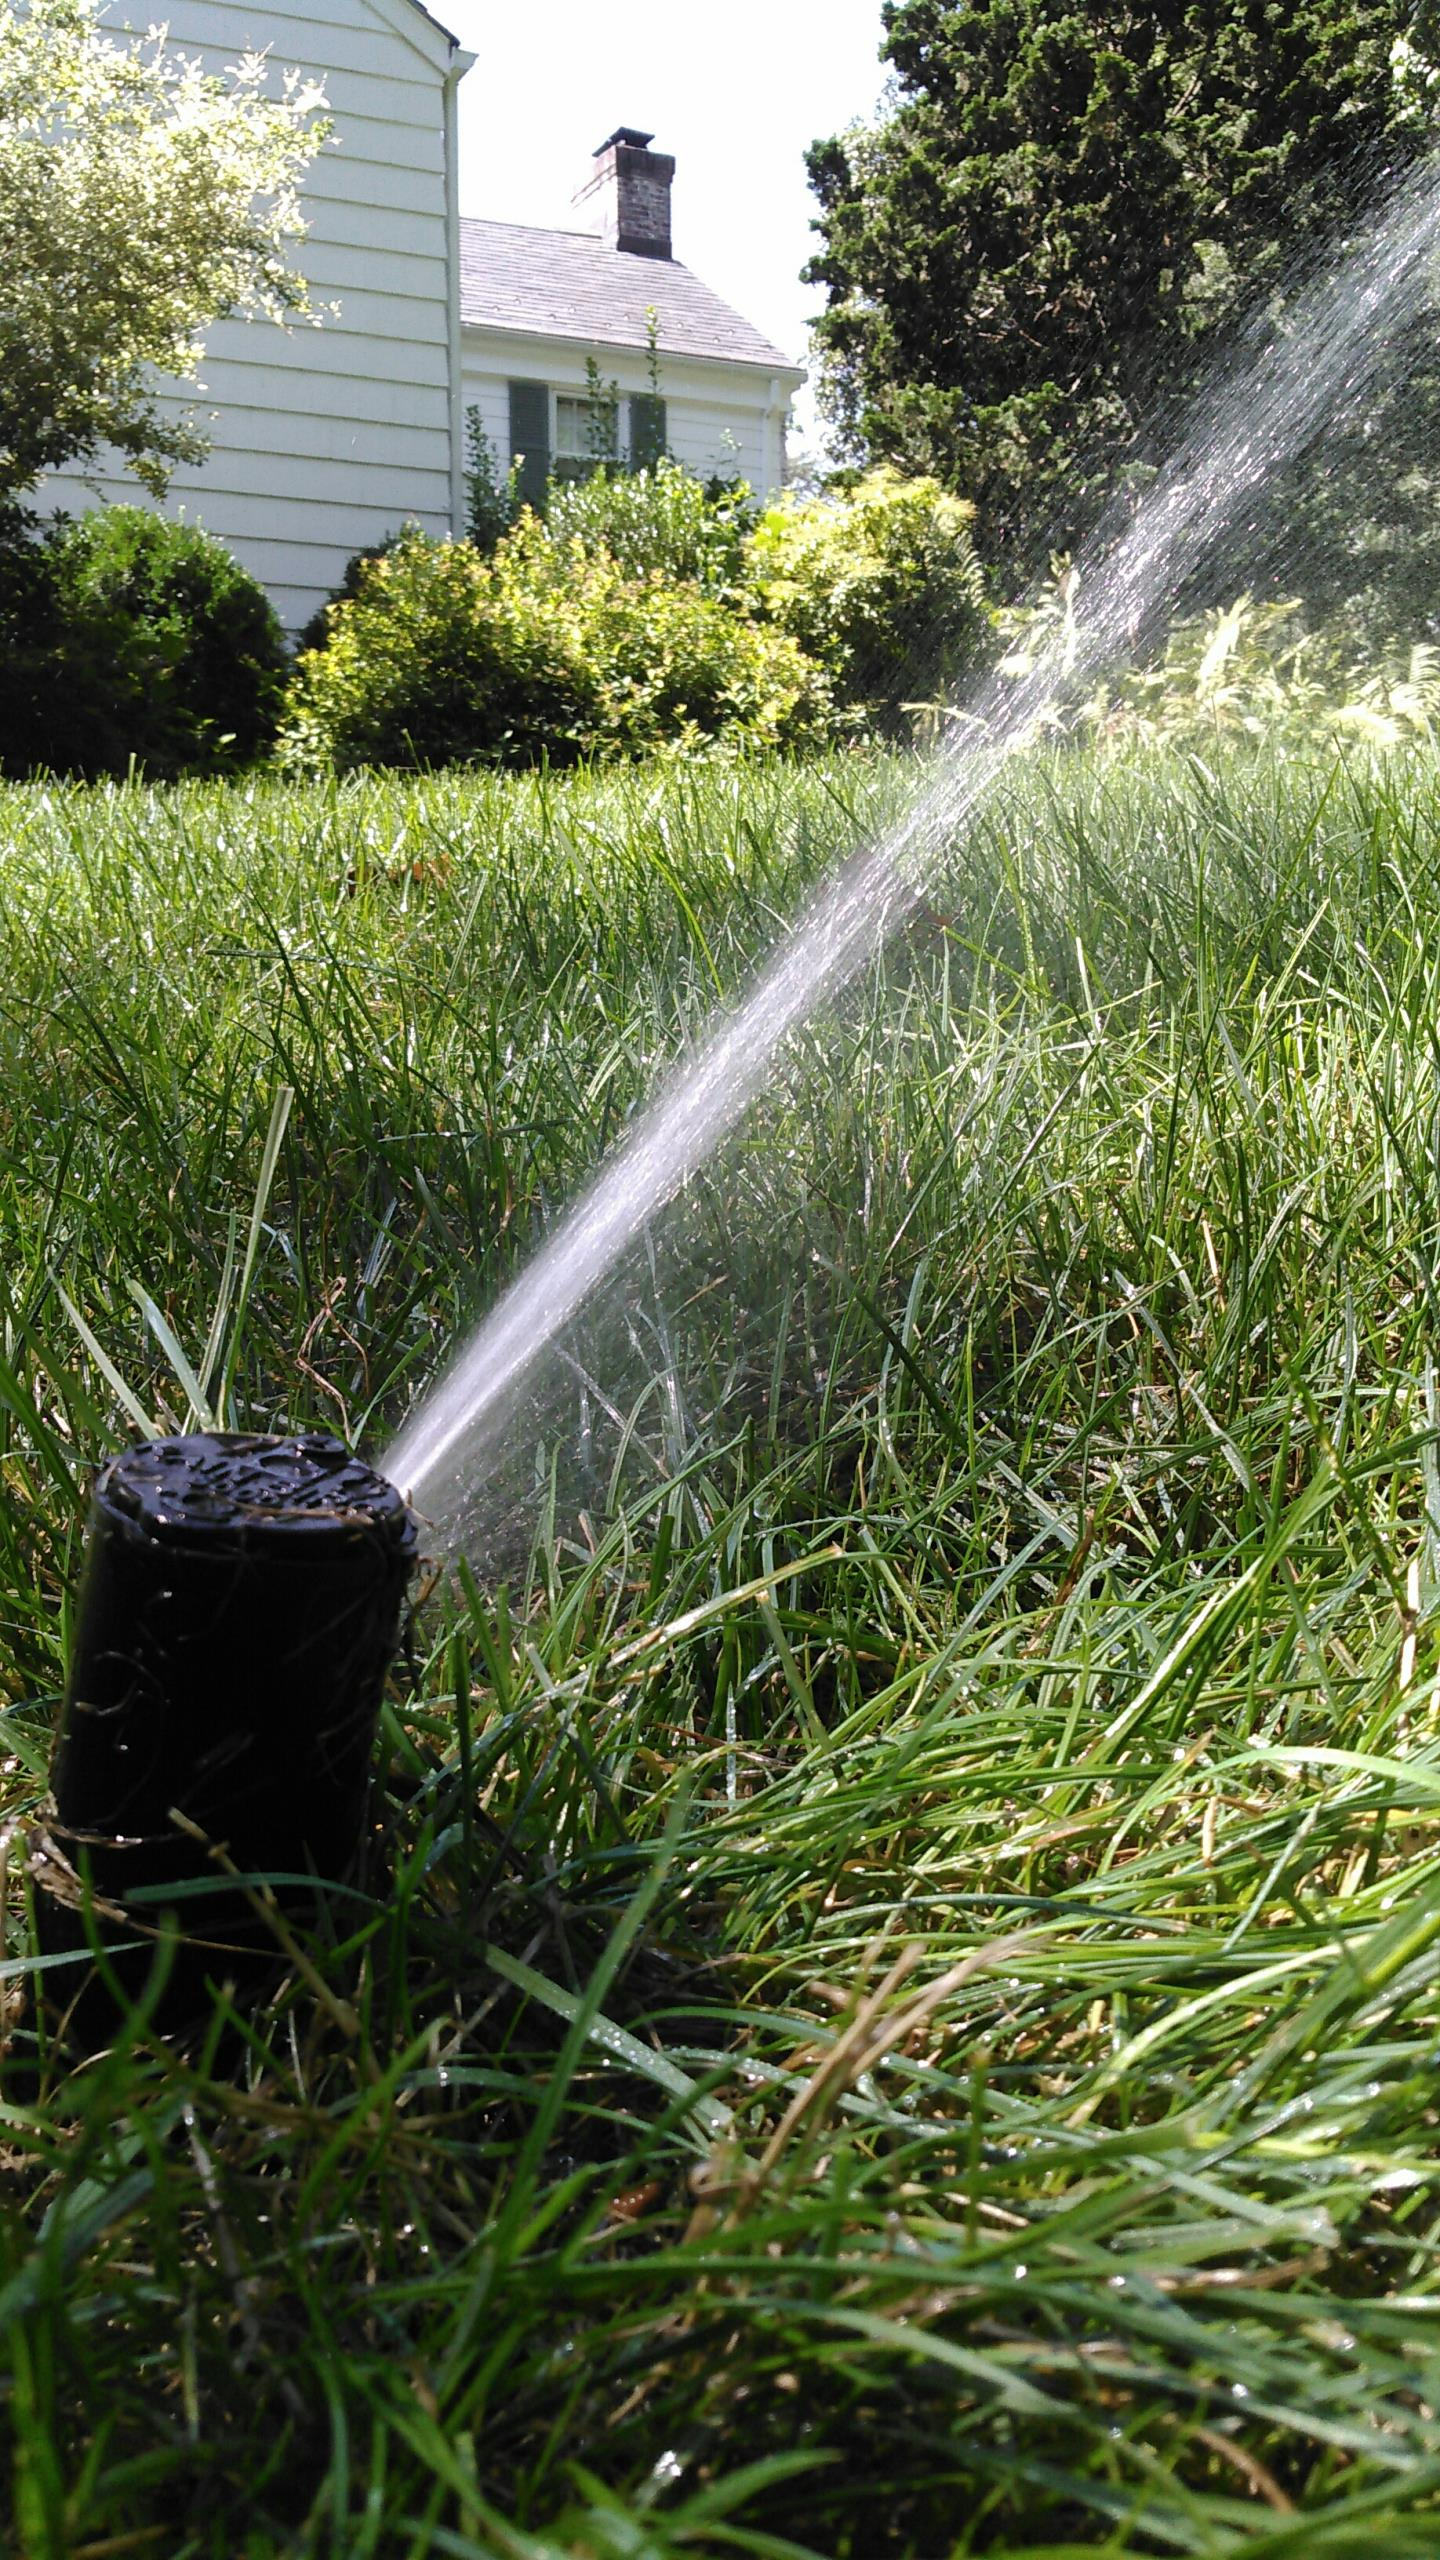 Gillette, NJ - Mid season check for sprinkler system to make sure that is working properly for the heat of the summer